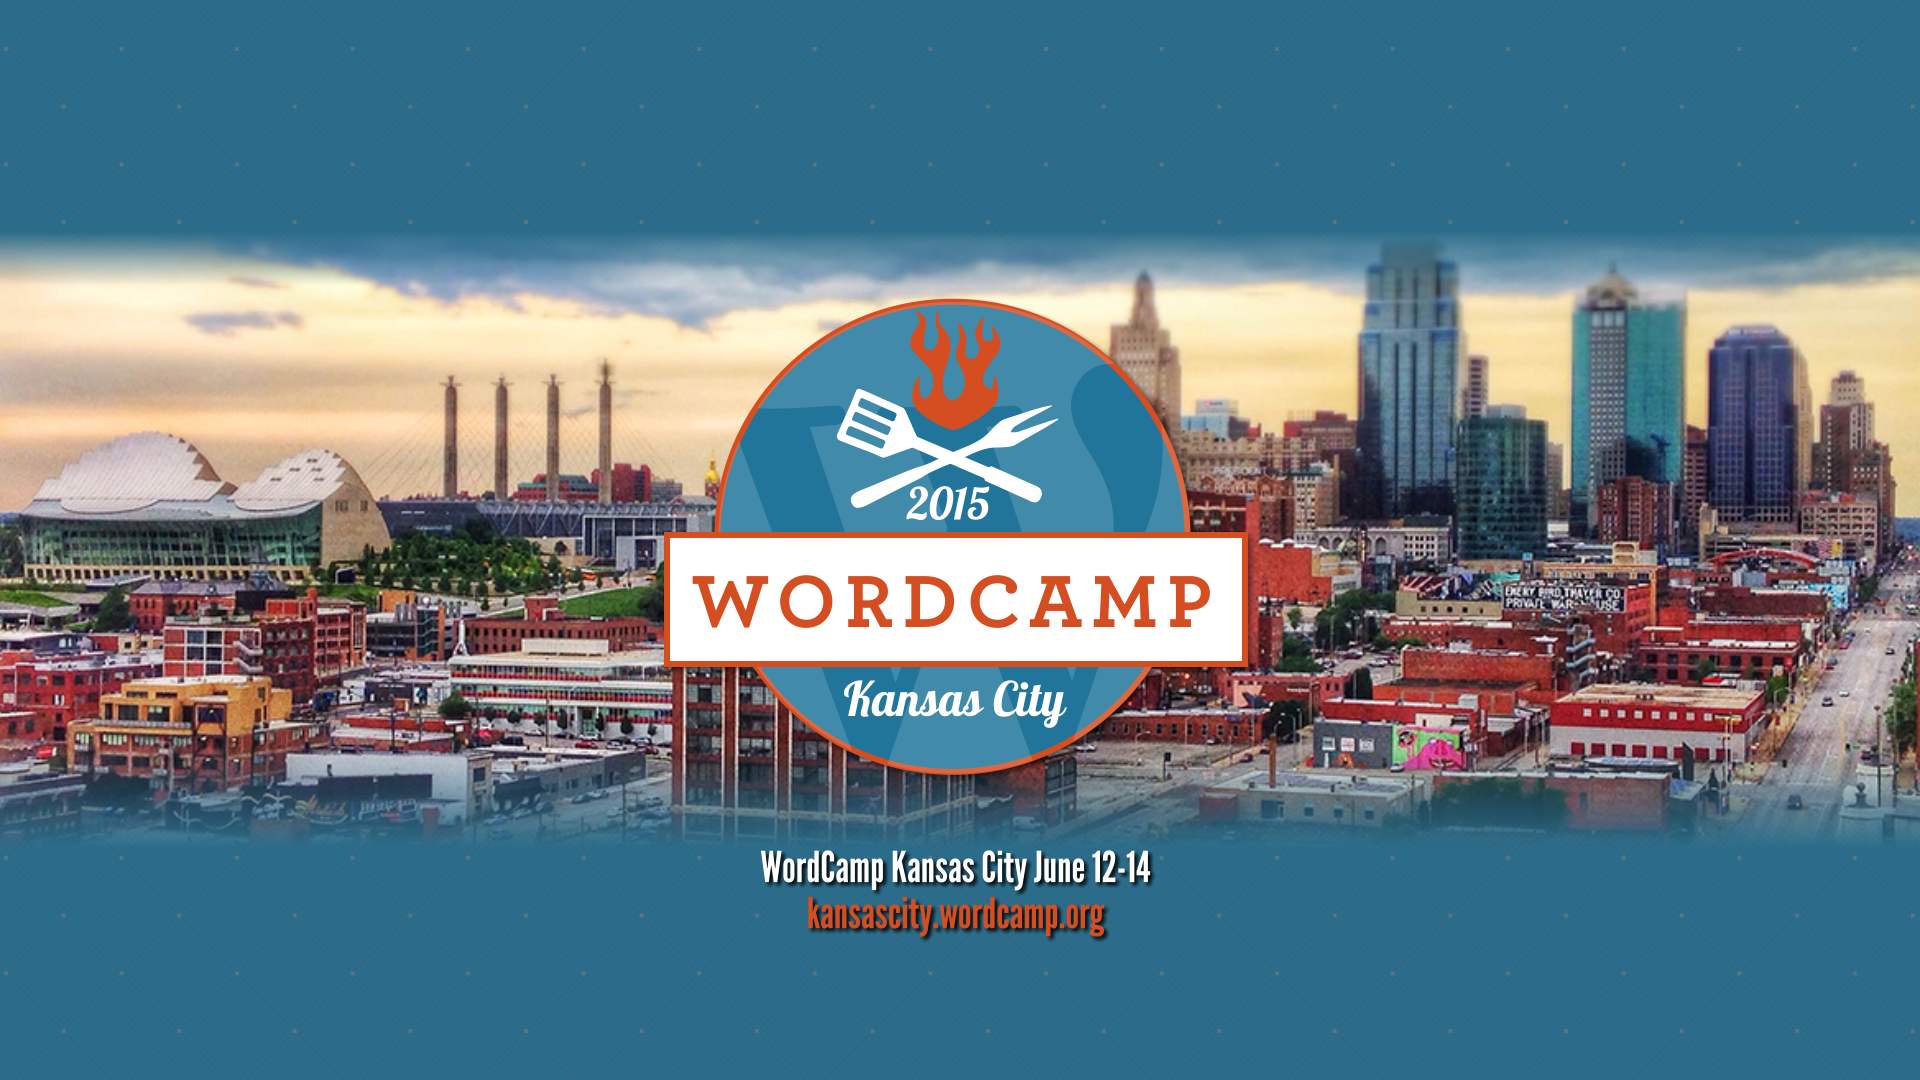 WordCampKC2015_Wallpaper1920x1080